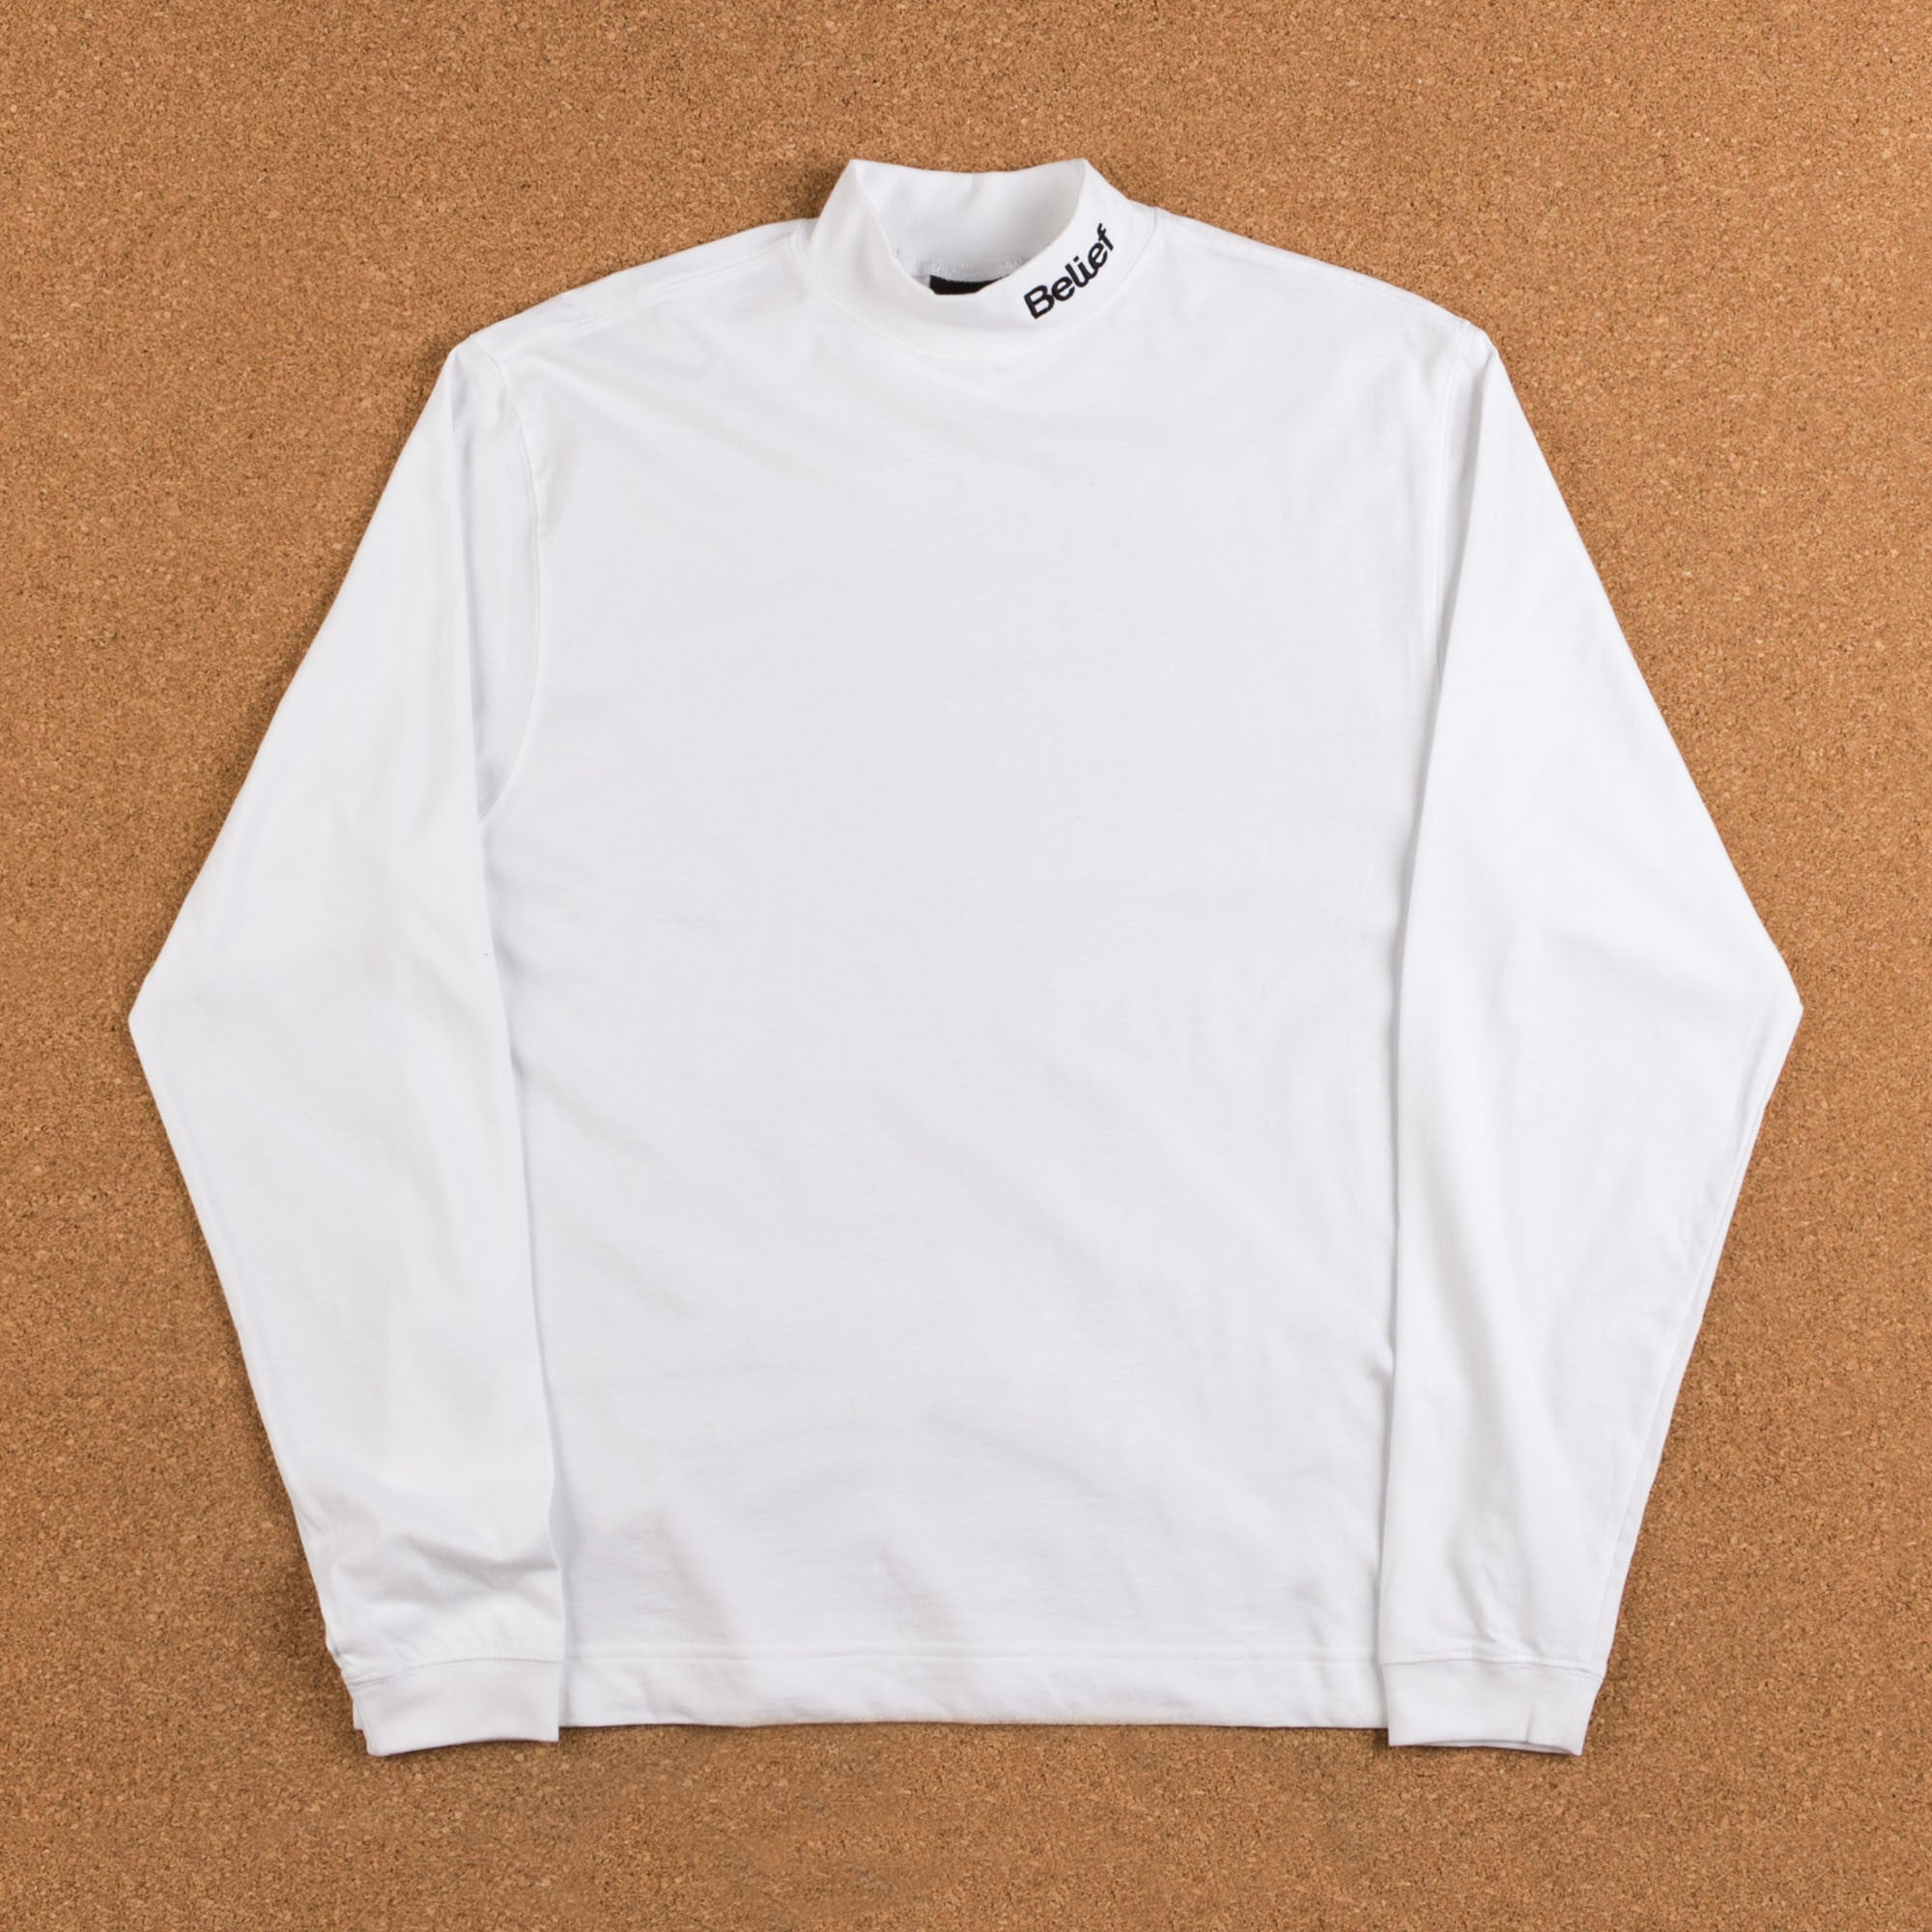 Belief Connect Mock Neck Long Sleeve T-Shirt - White